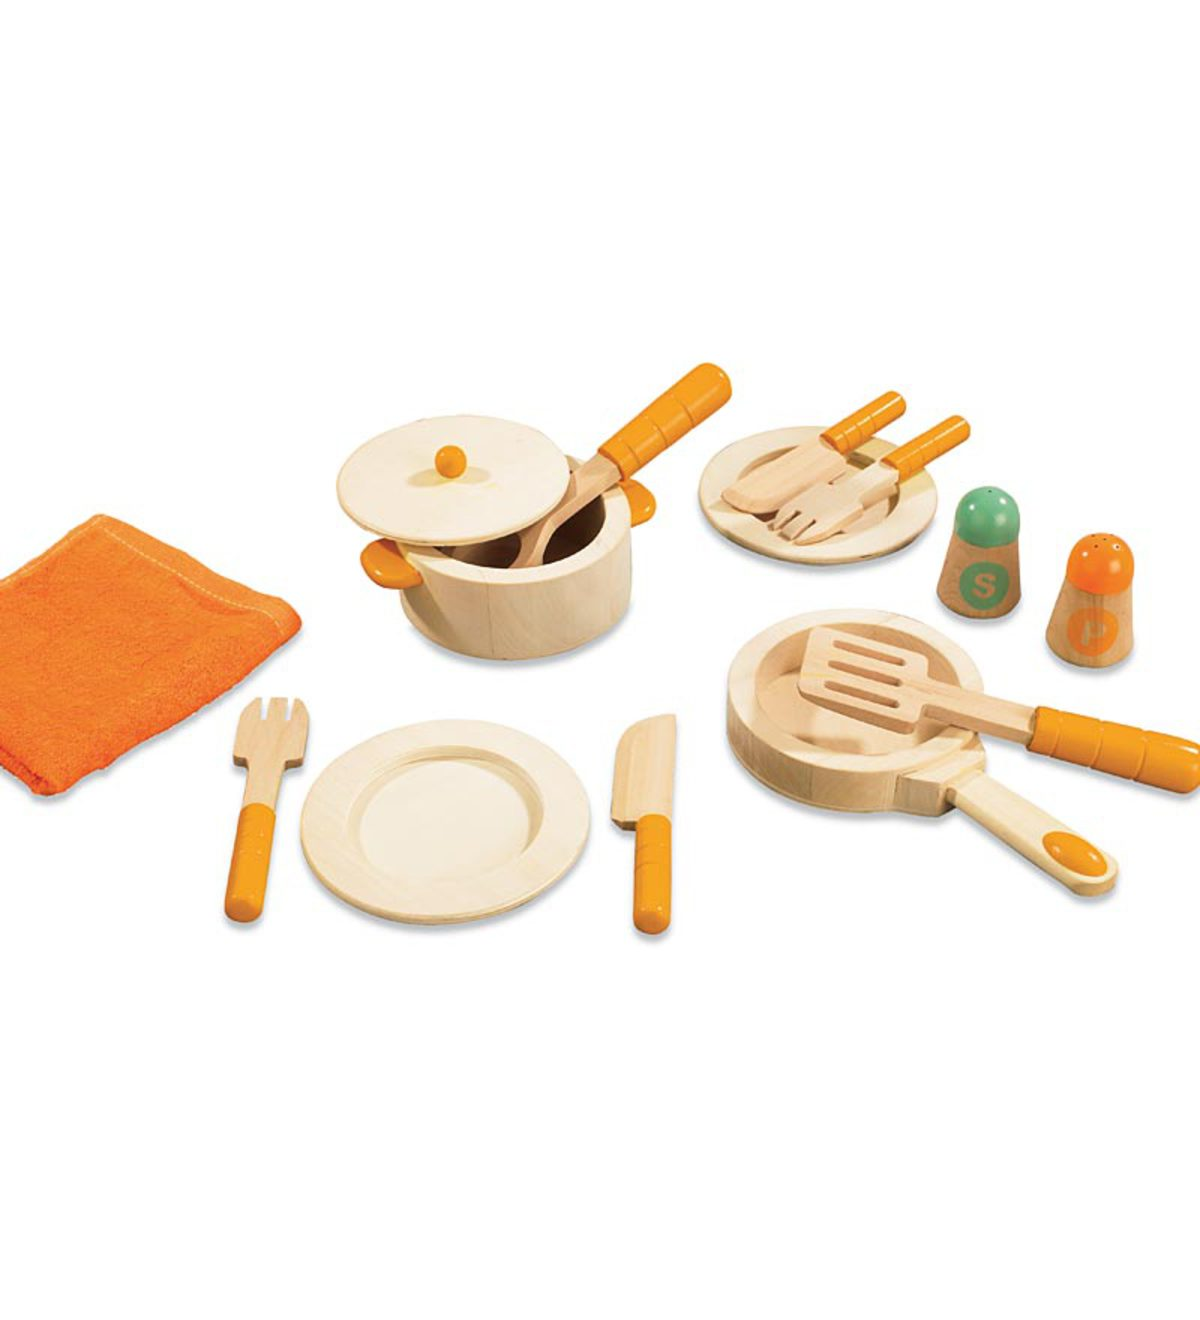 12-pc. Natural Wood Gourmet Chef Cookware Set